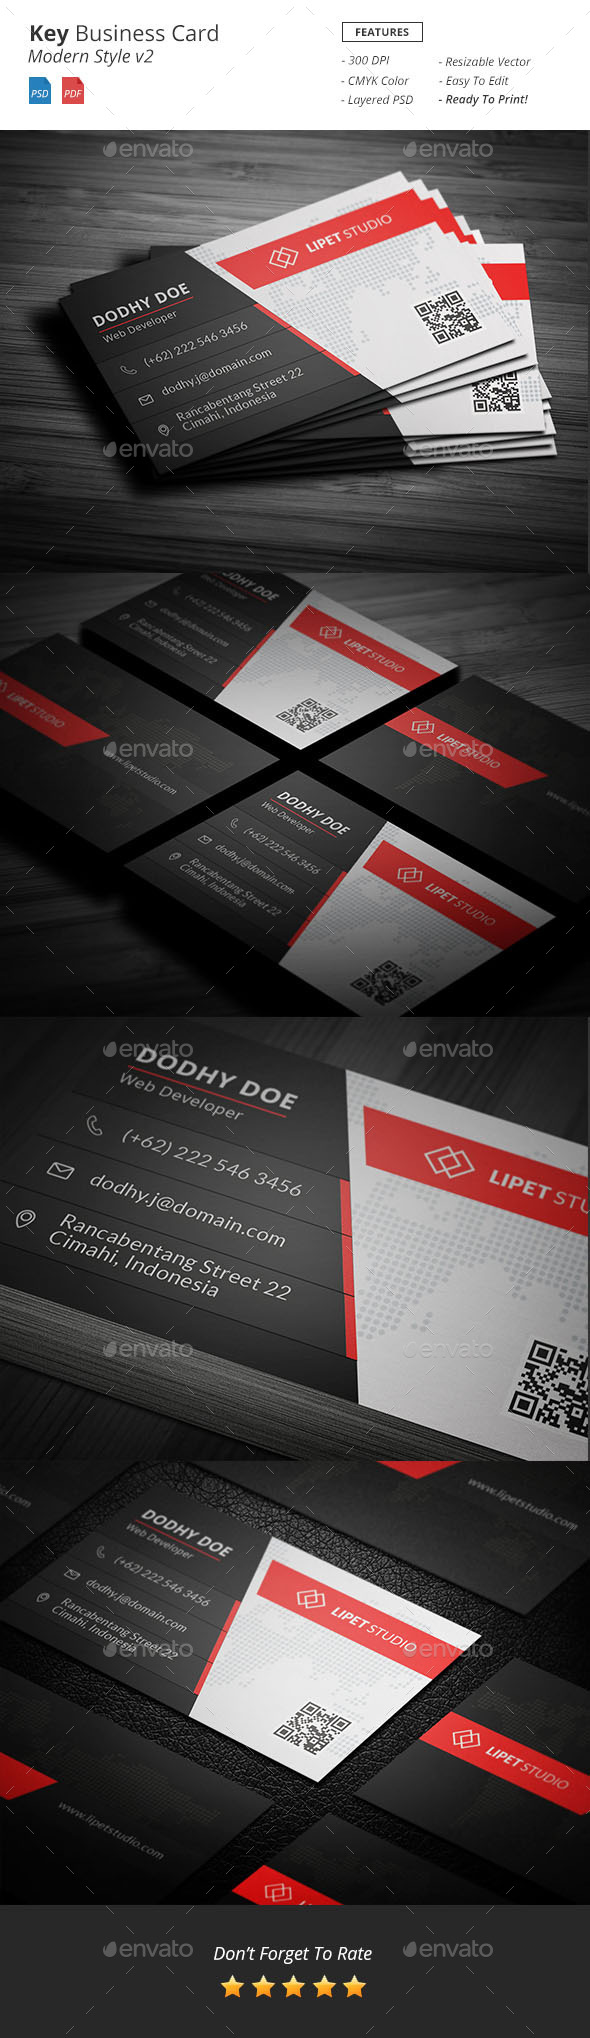 Key Modern Business Card Template v2